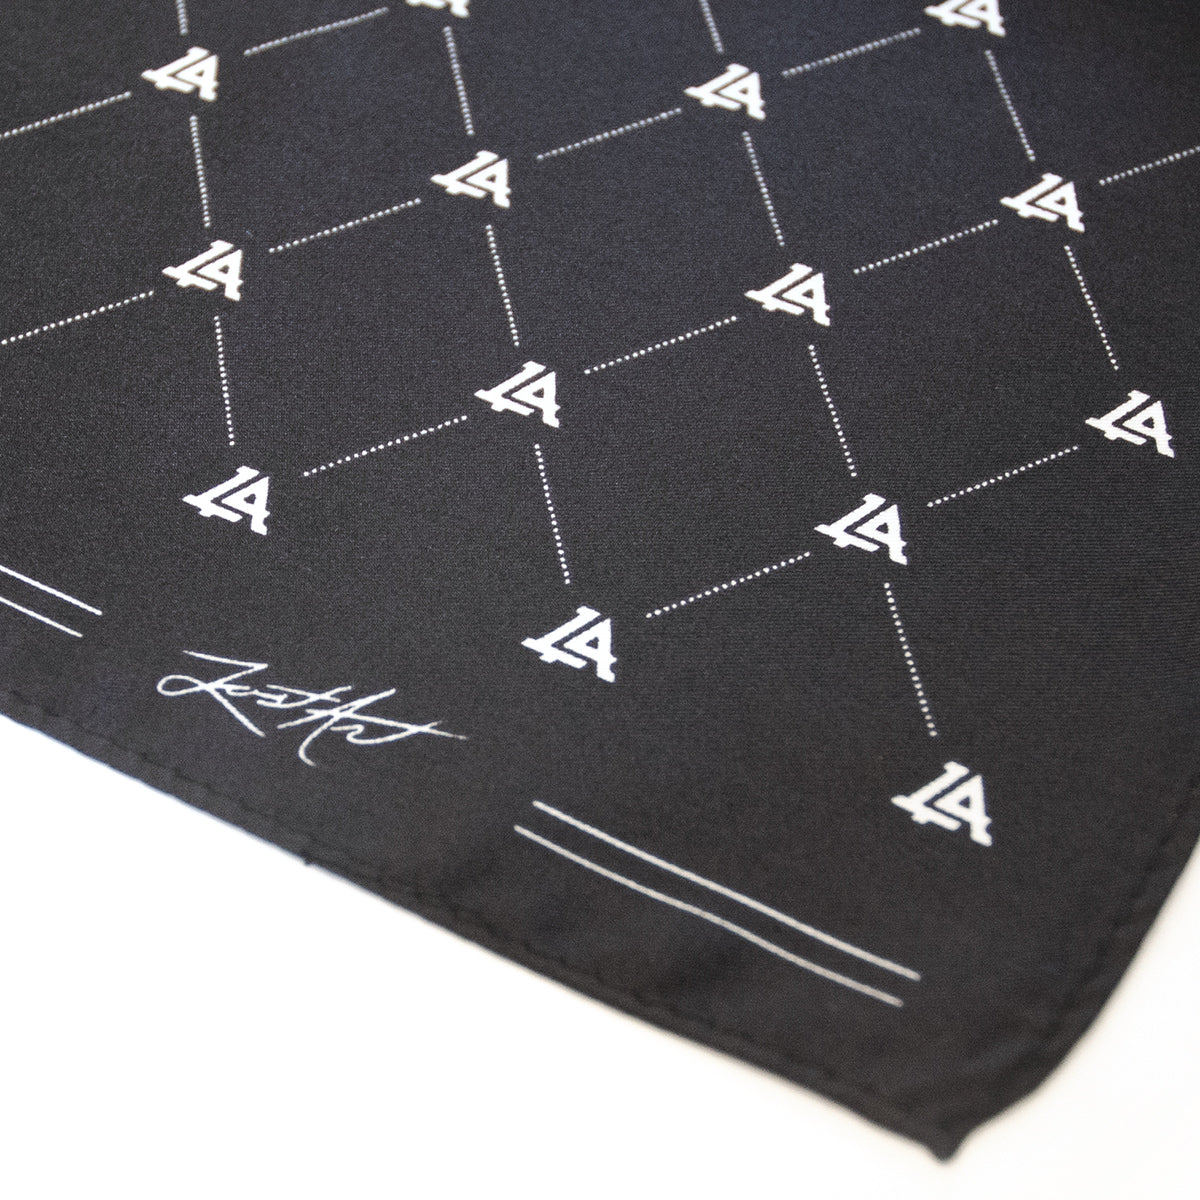 Lost Art Canada - custom black silk bandana close up view